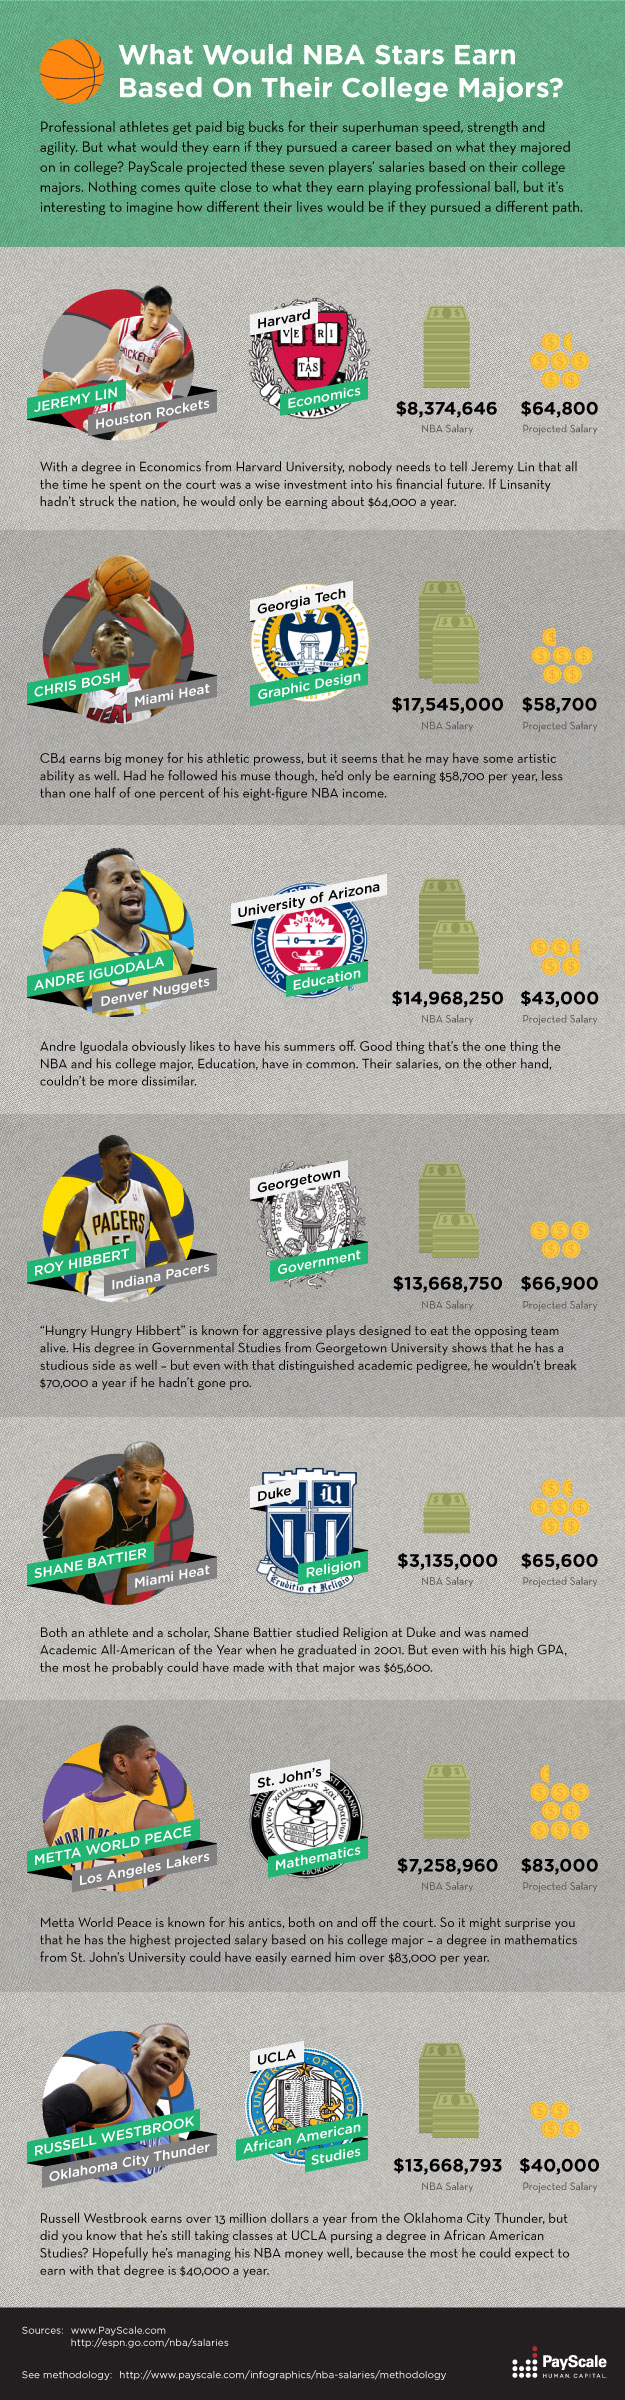 What would NBA stars earn based on their college majors?